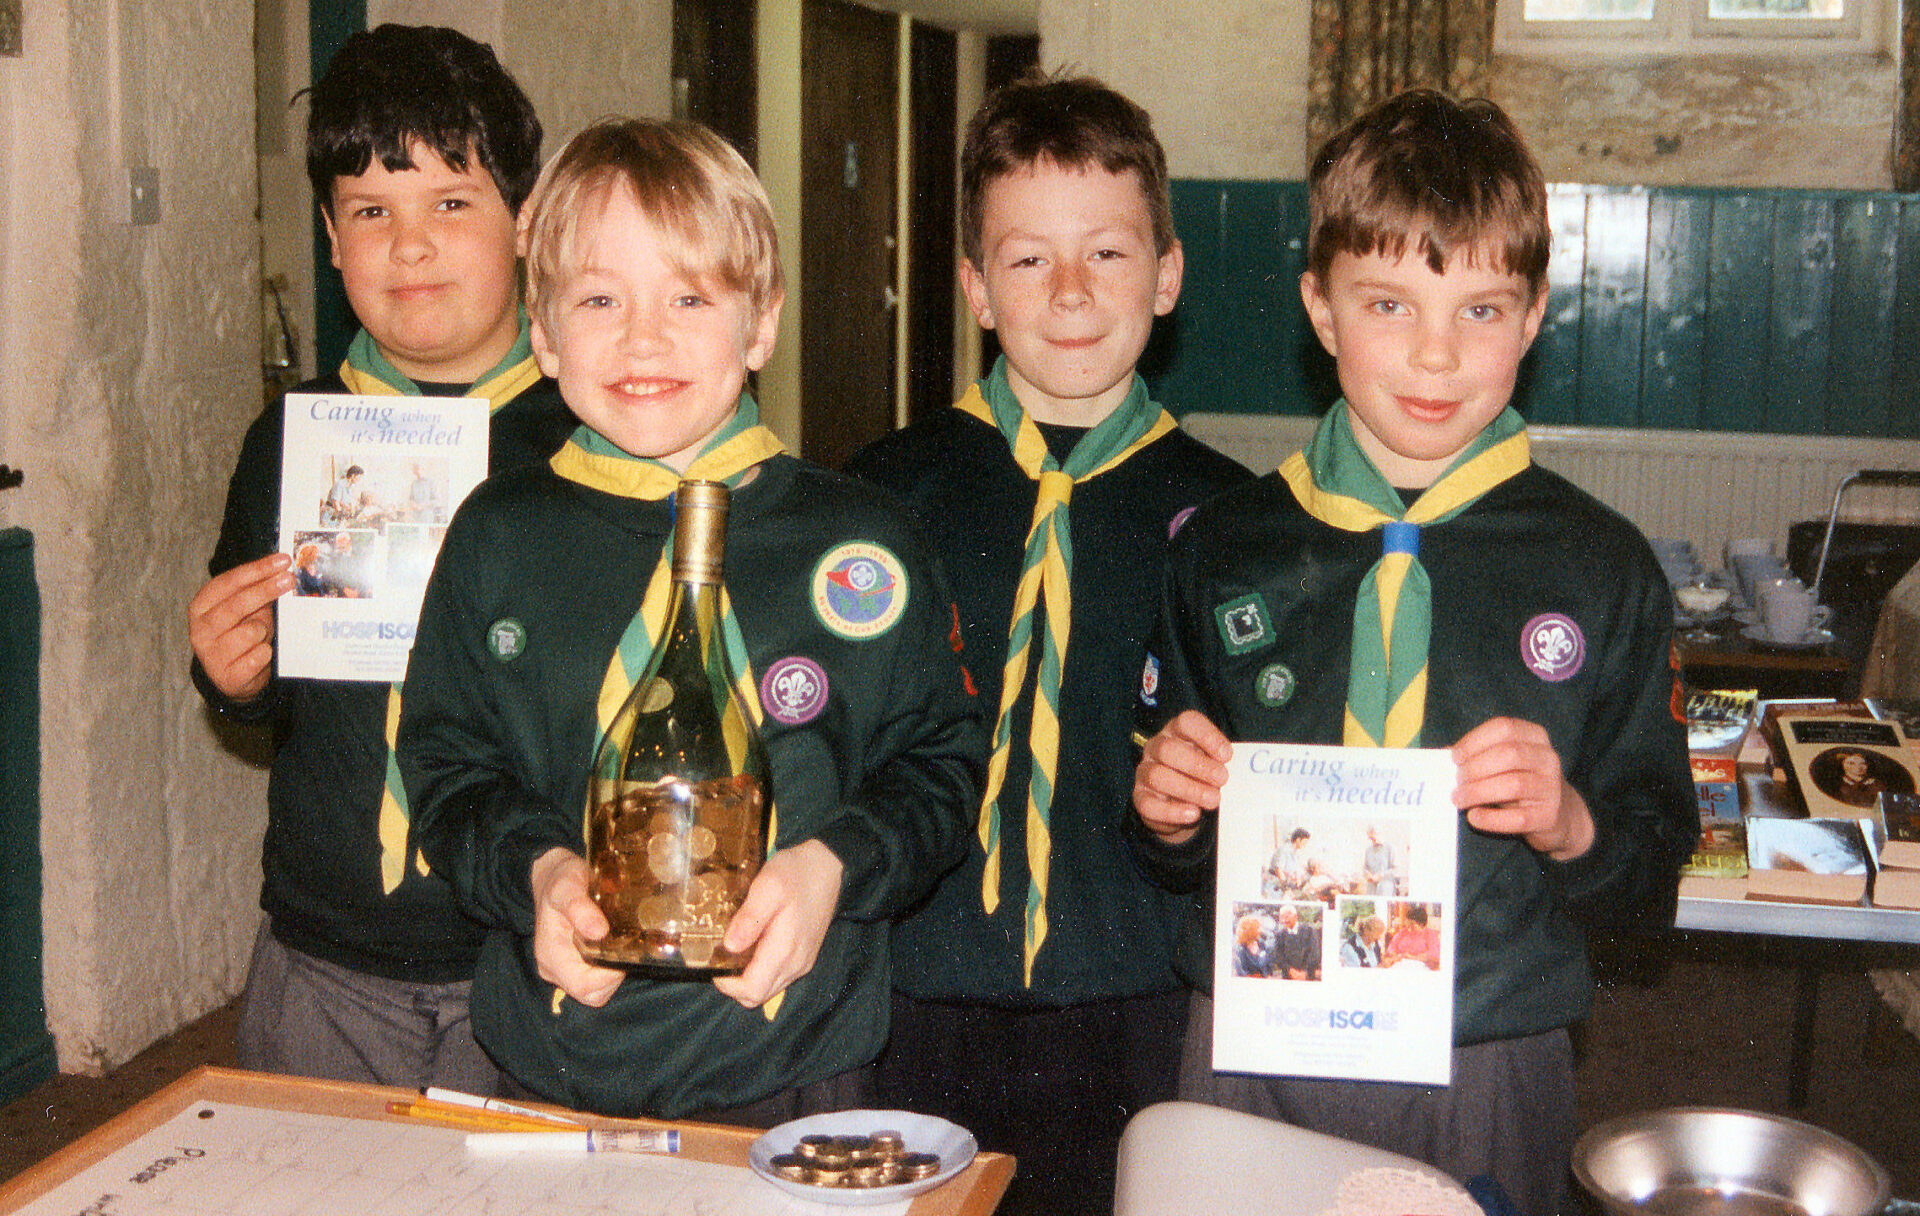 Proud Chagford Cubs in 1998. 'Caring when it's needed'.